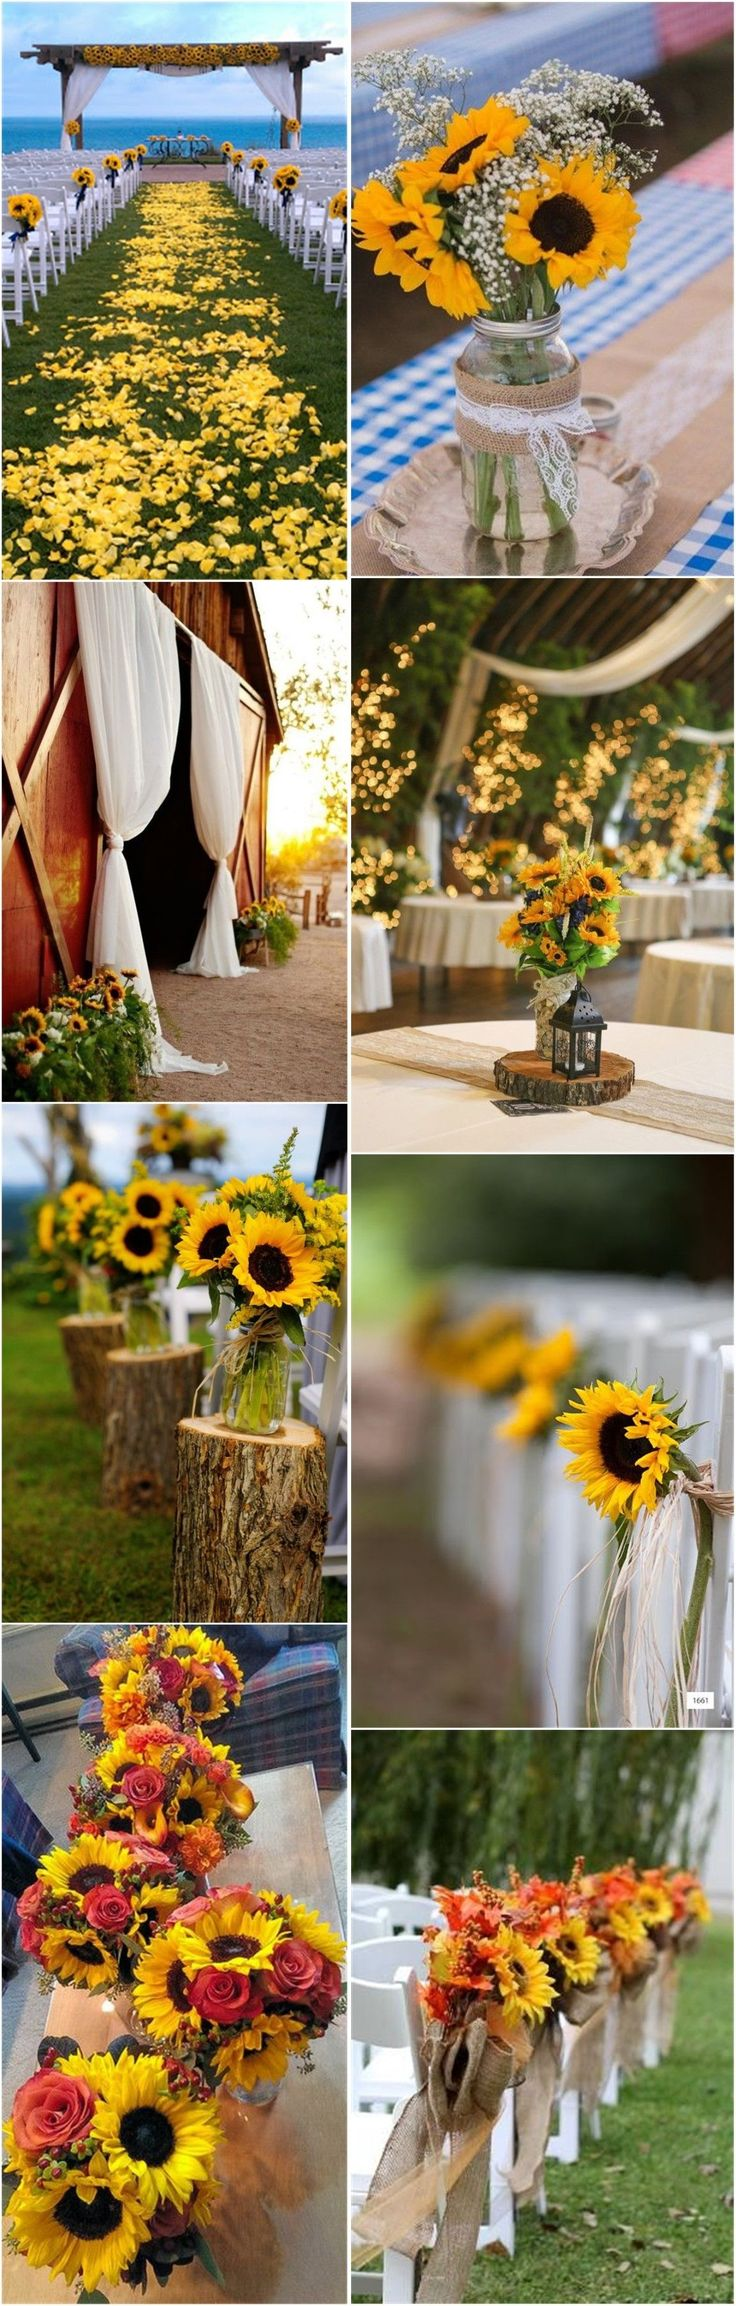 best wedding decor images on pinterest wedding tables weddings